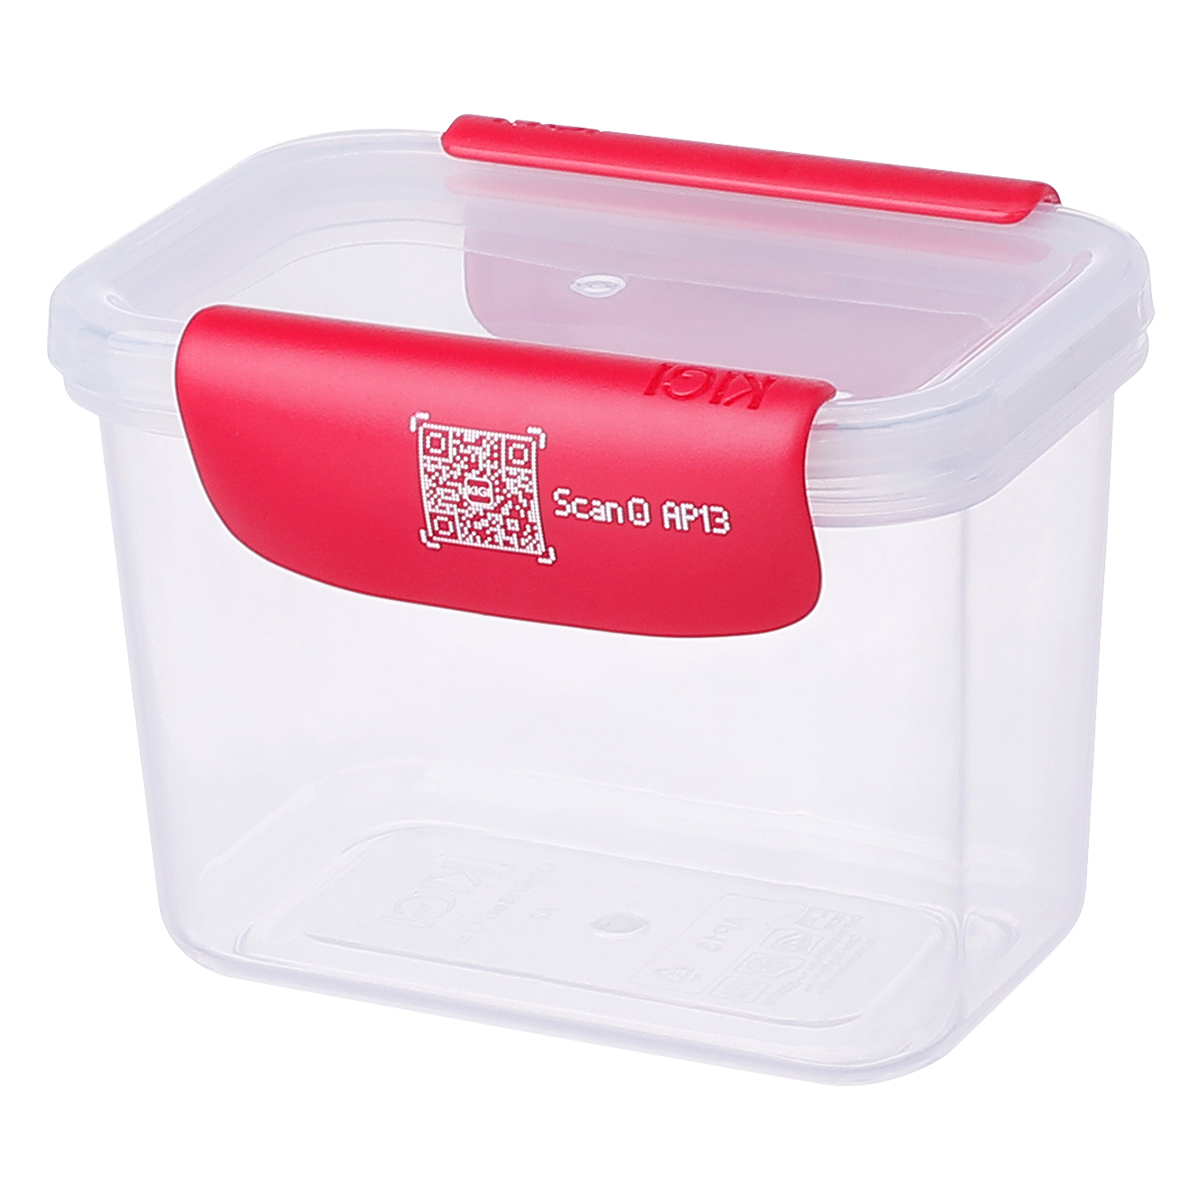 KIGI hot sale smart high quality plastic containers storage